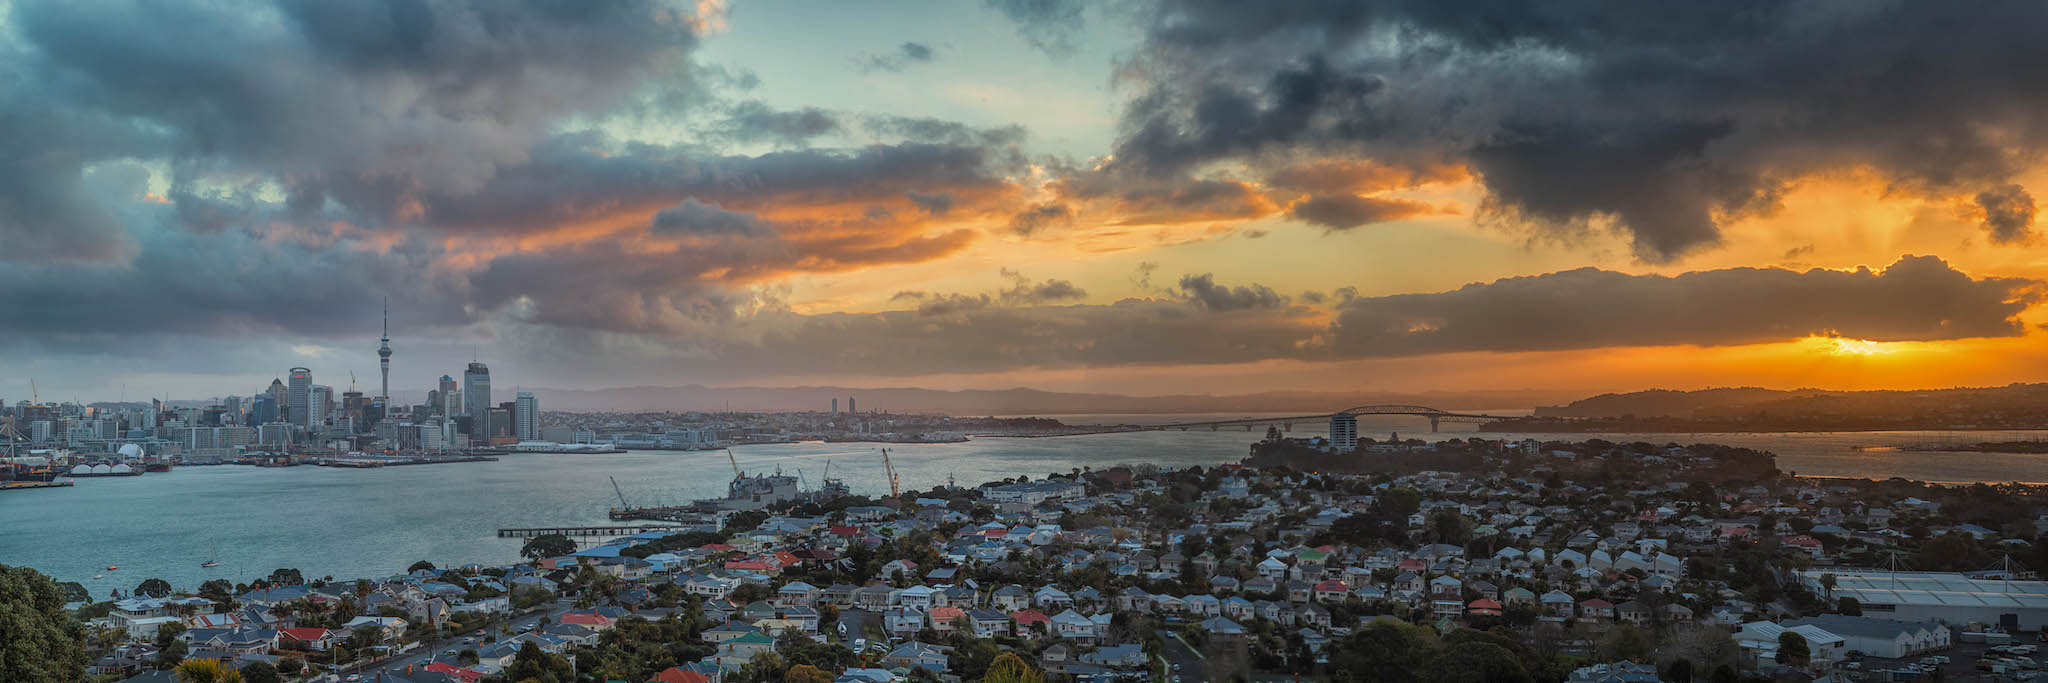 Overlooking Auckland, New Zealand at sunset